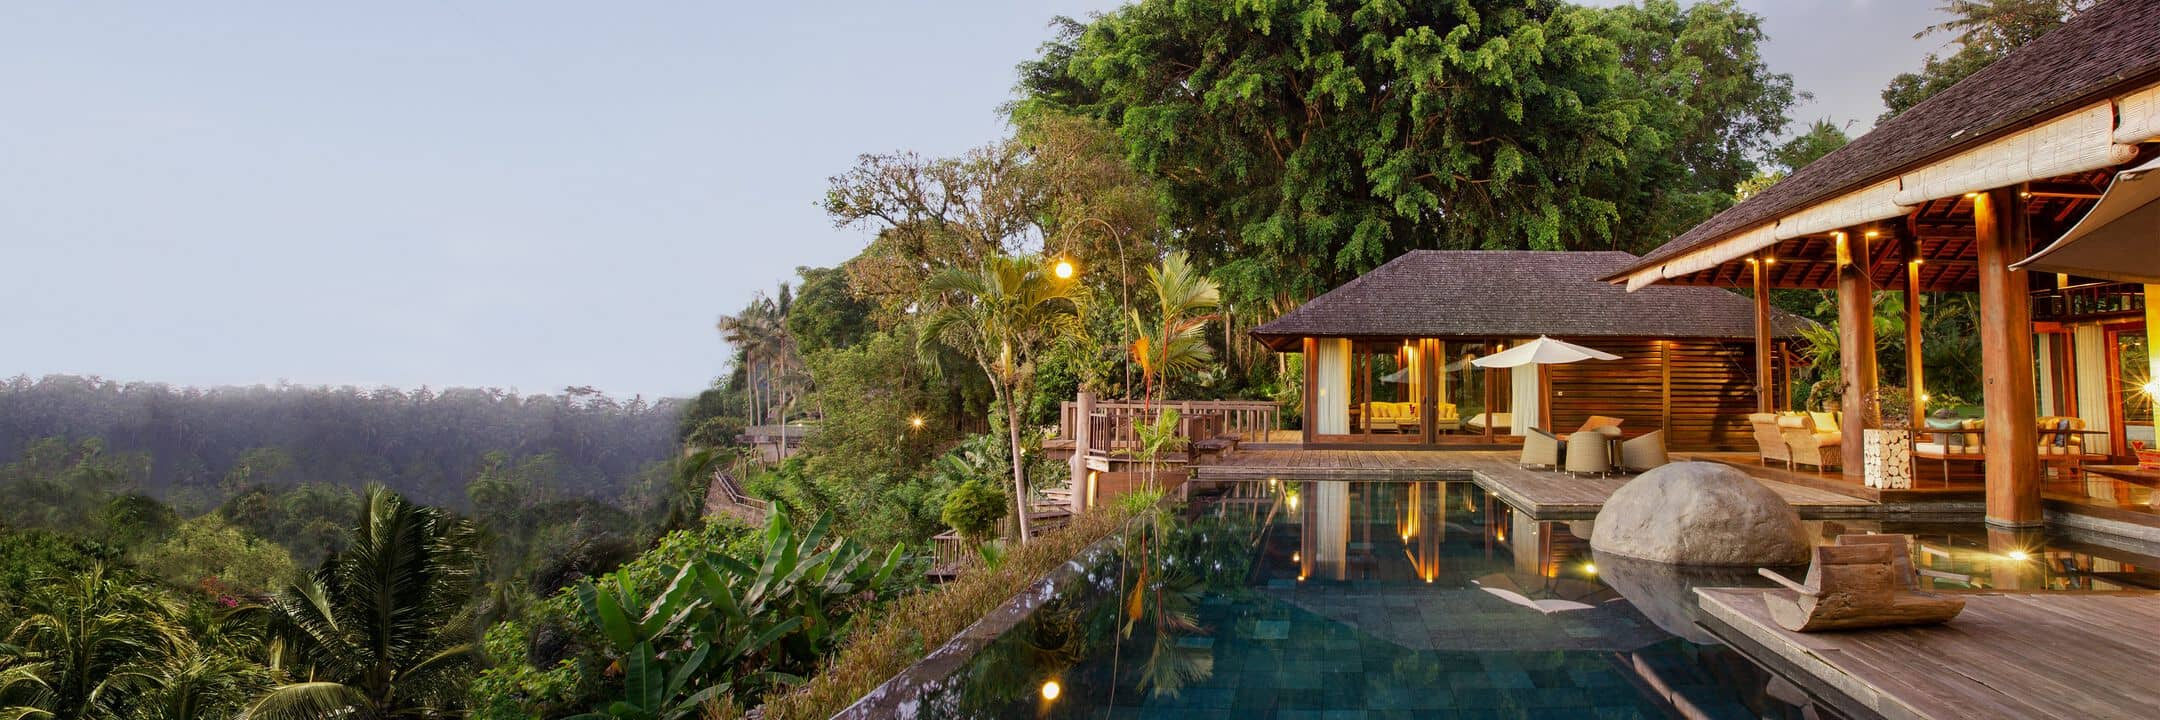 Luxury rentals in Bali